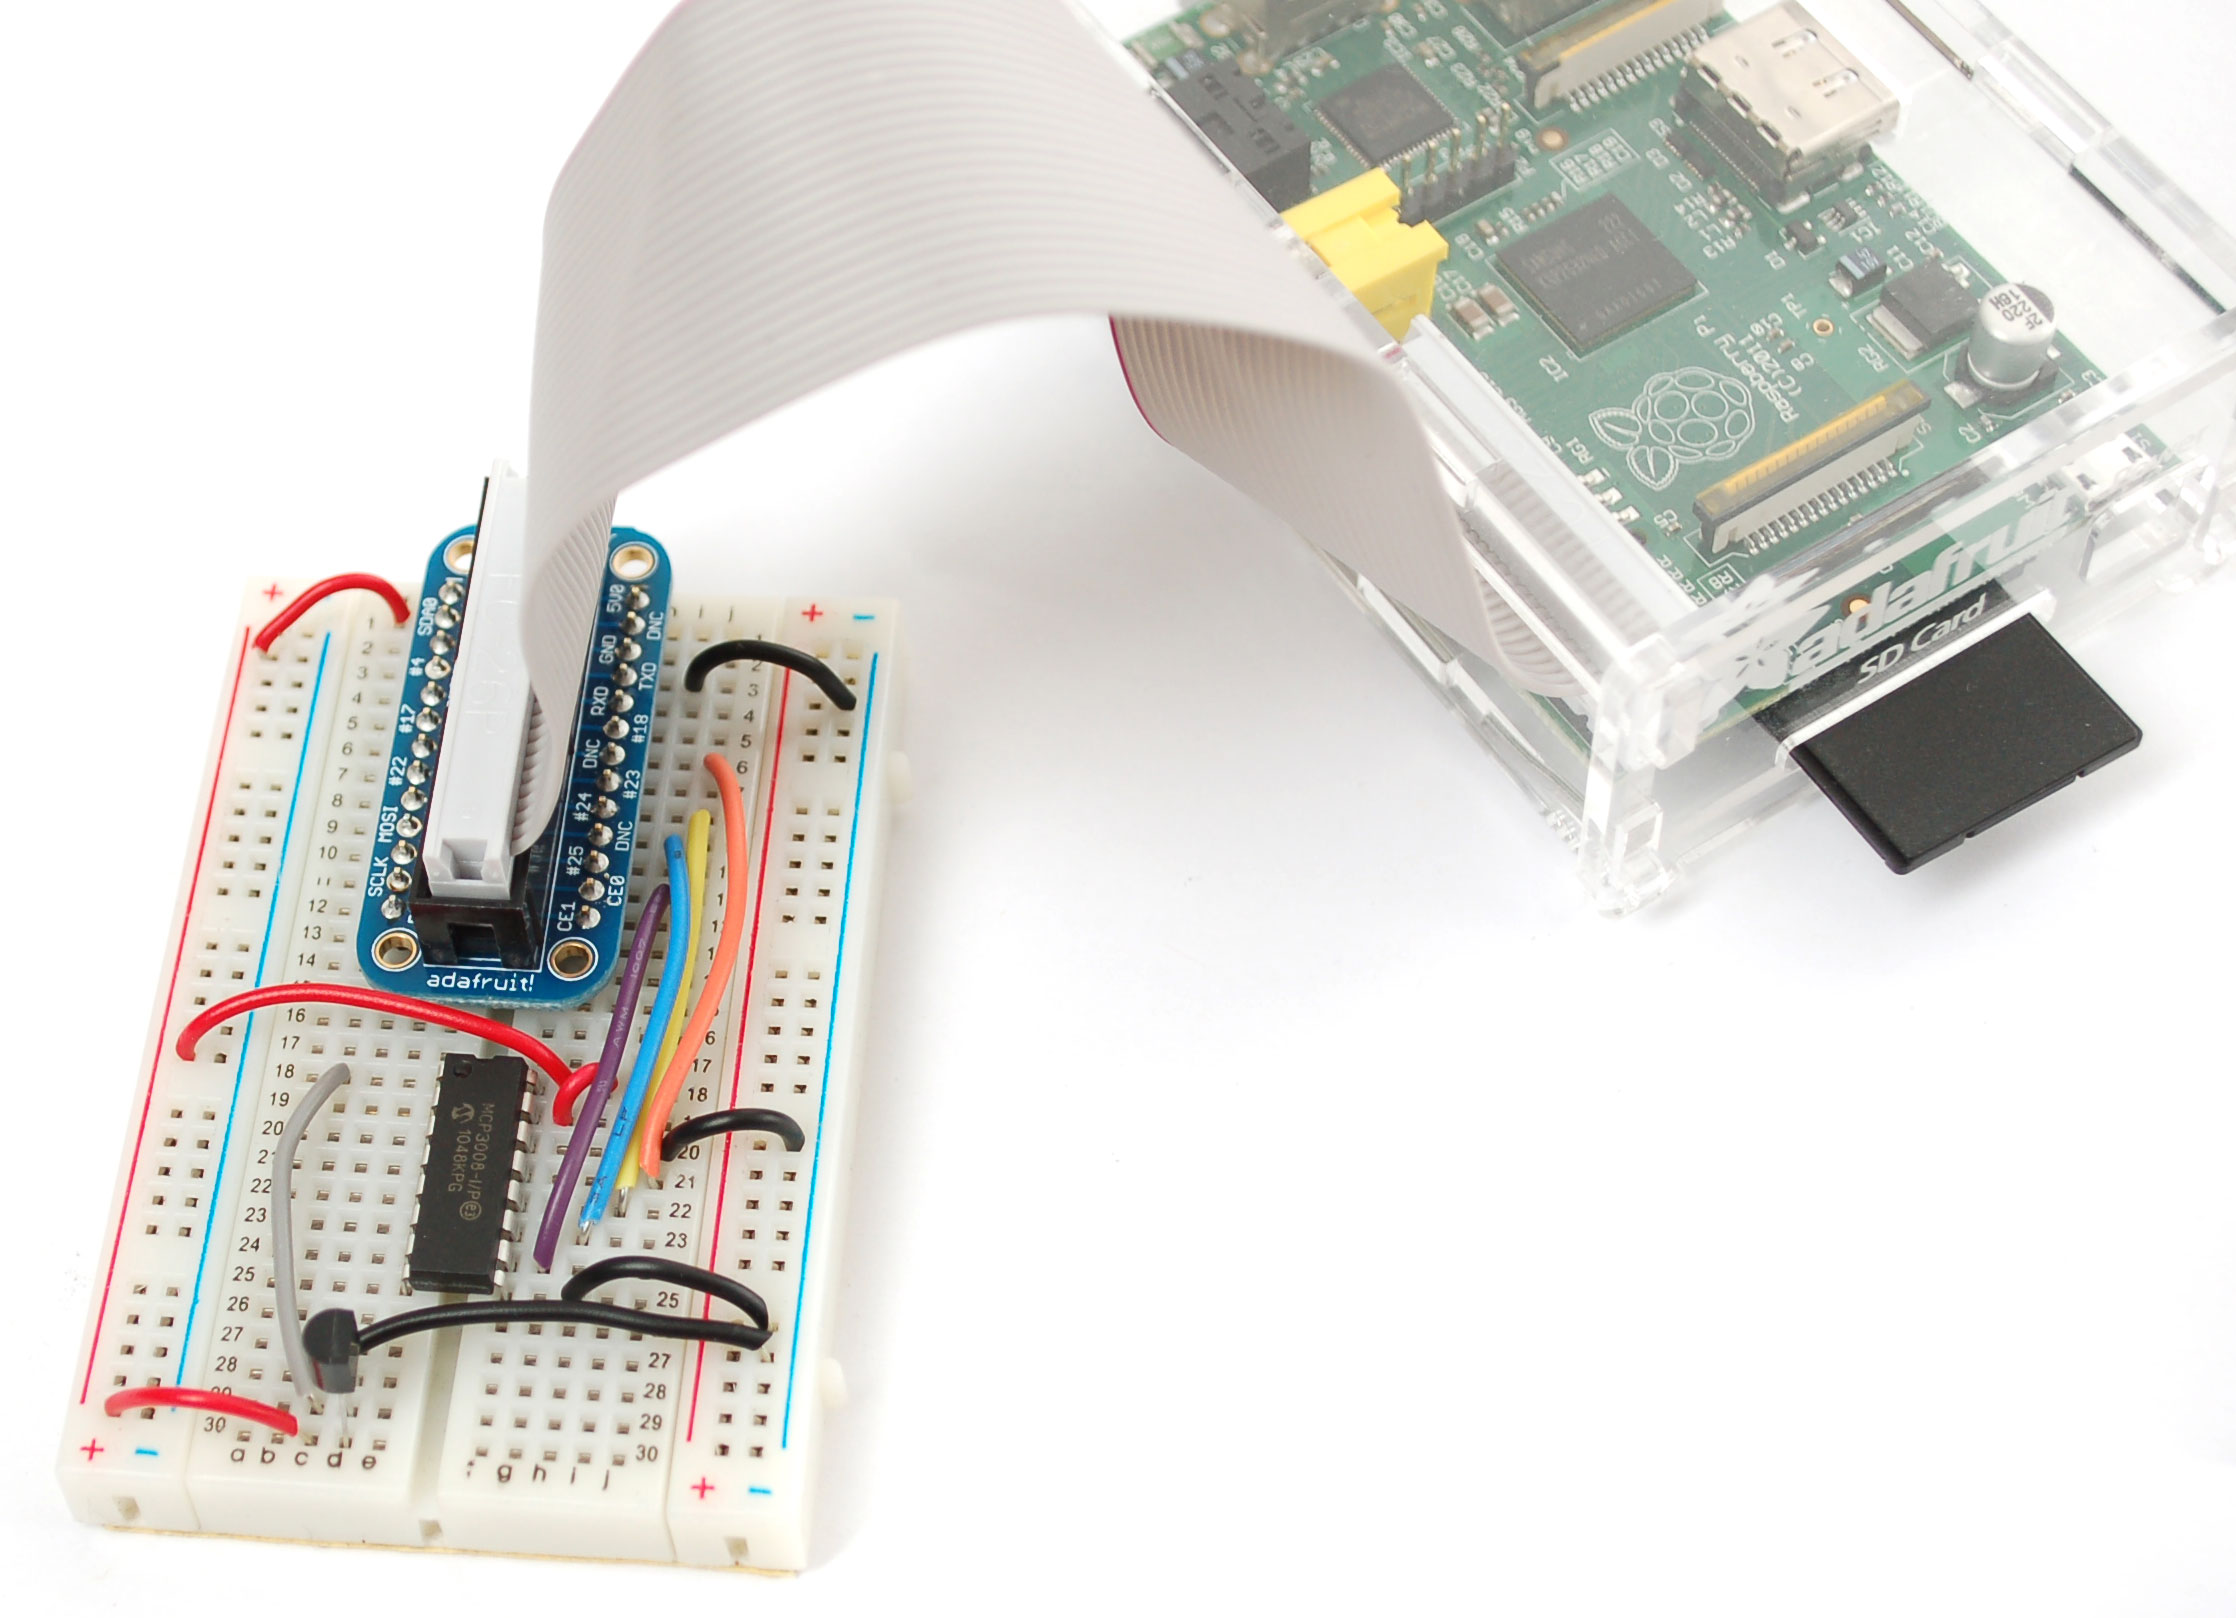 raspberry_pi_pi-with-temp-sensor.jpg